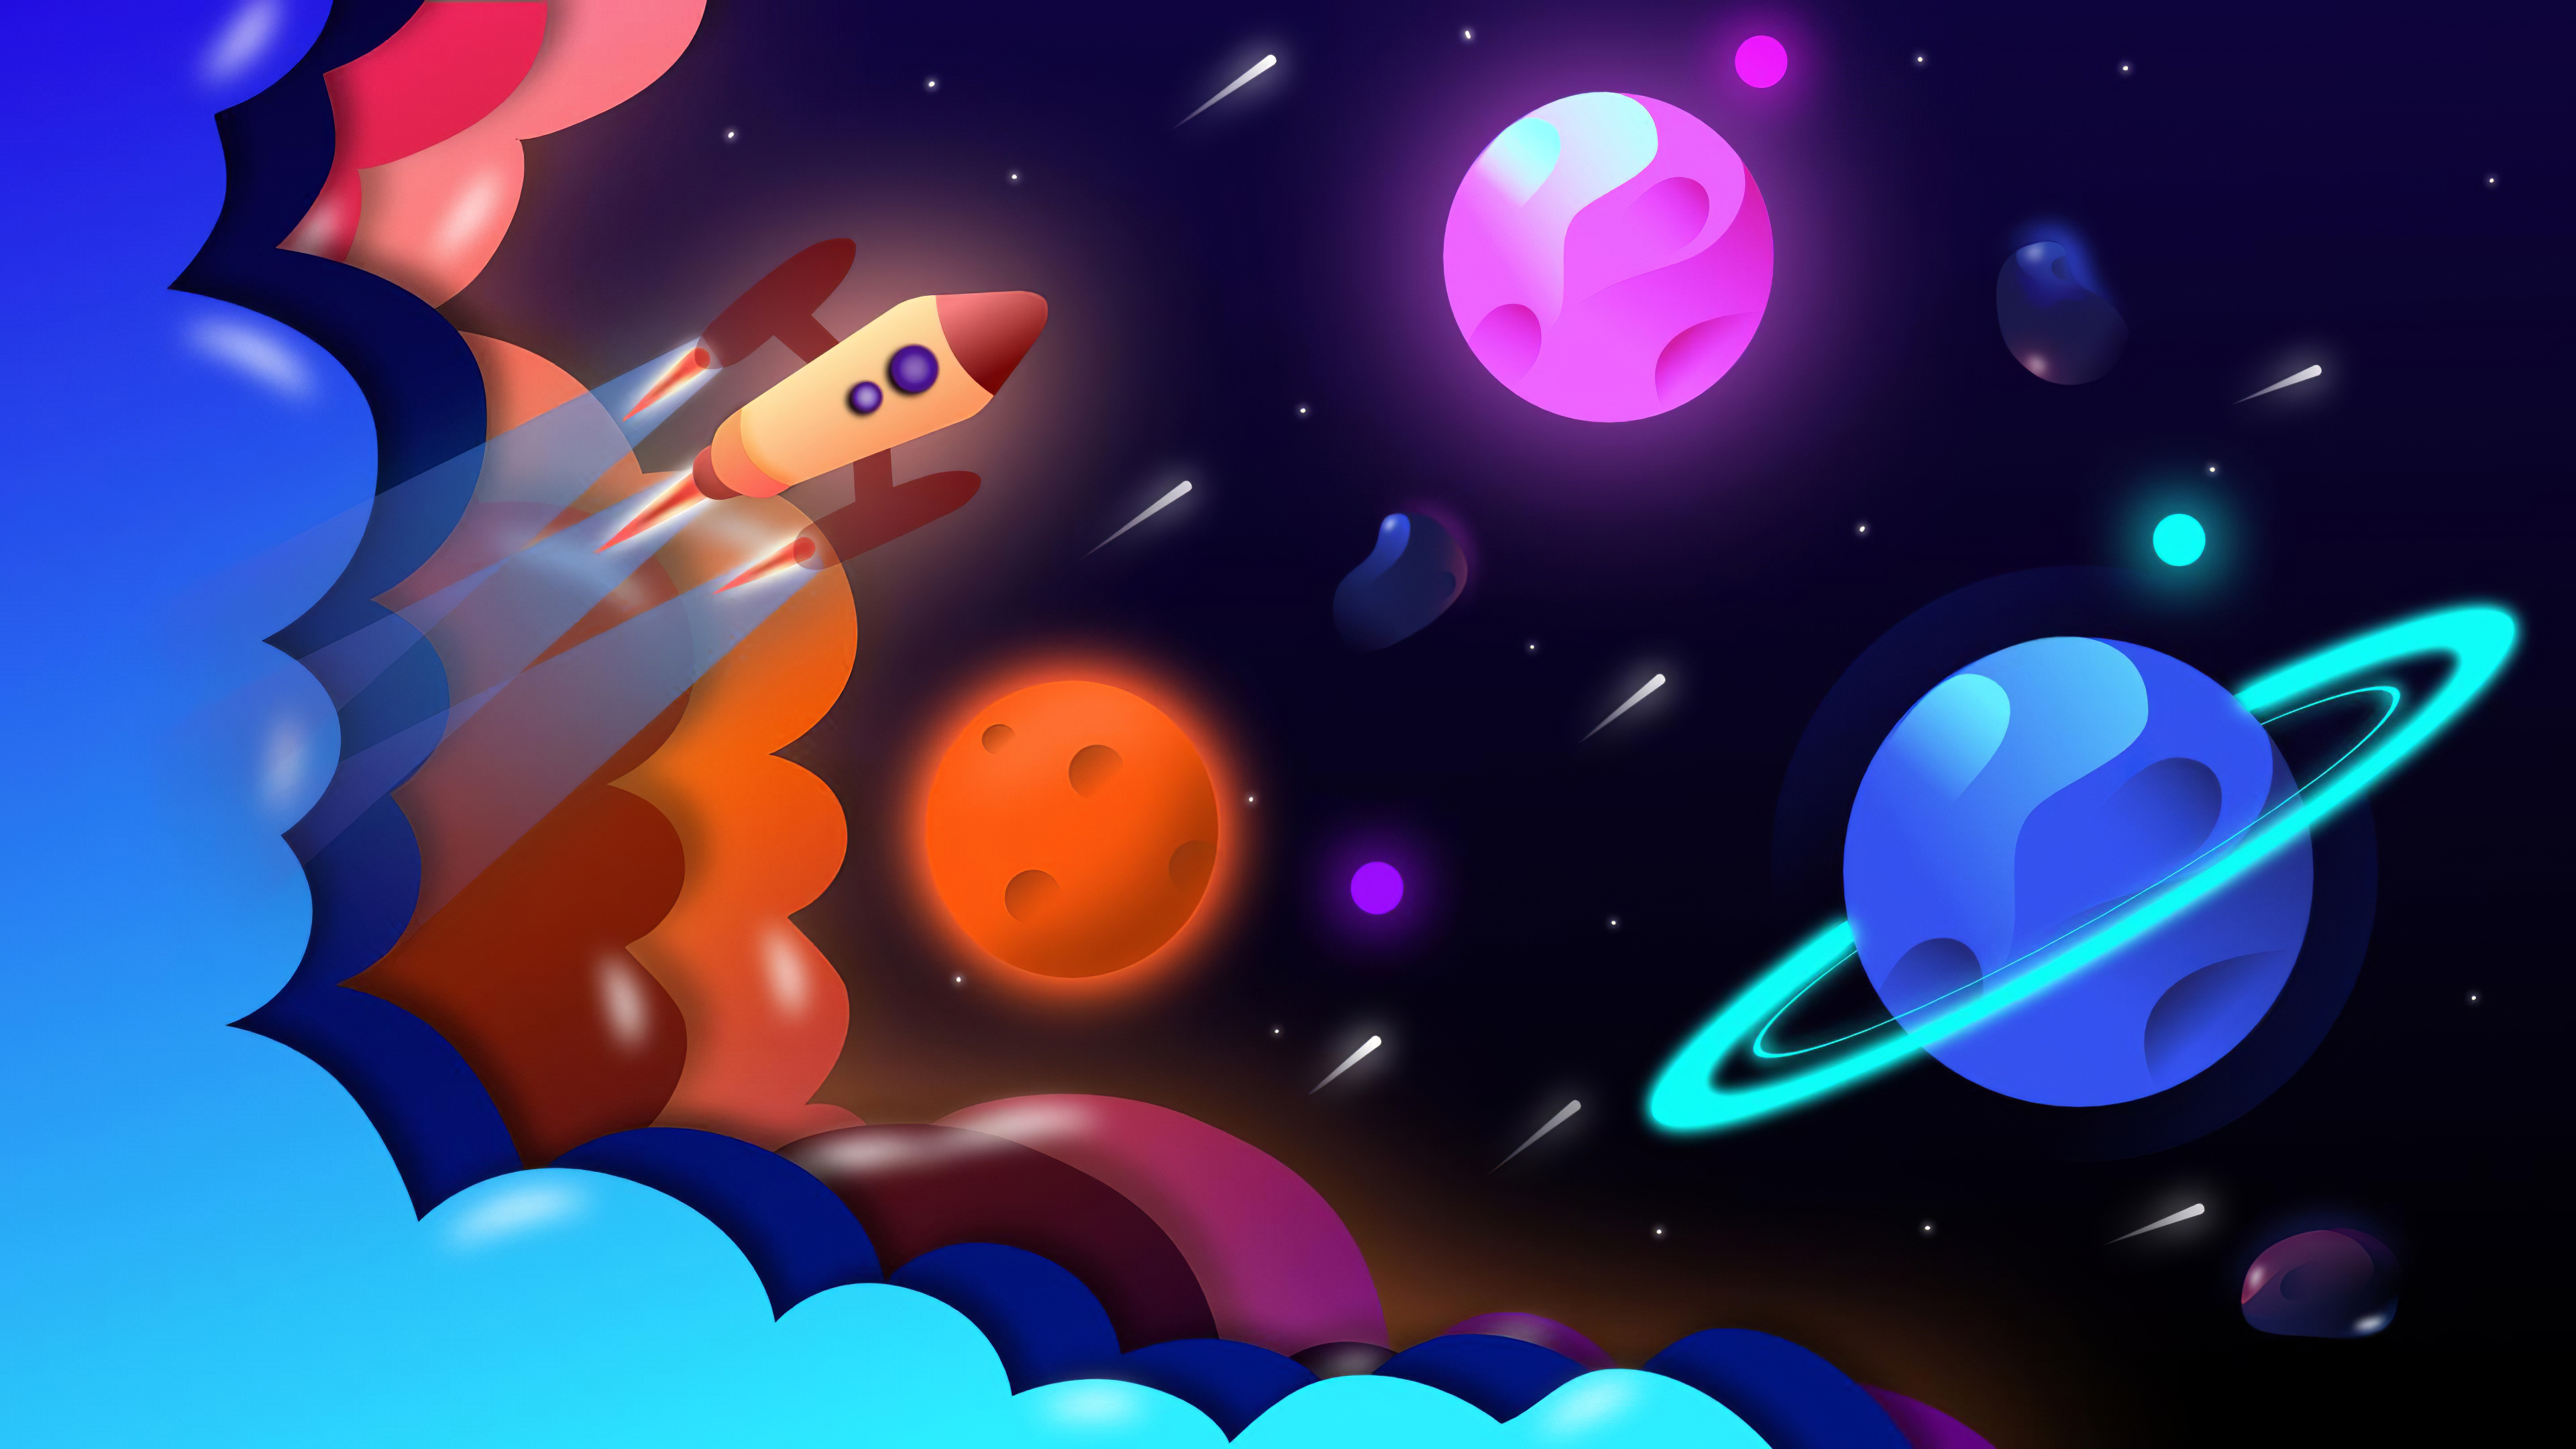 General 3840x2160 digital art digital space space travel colorful